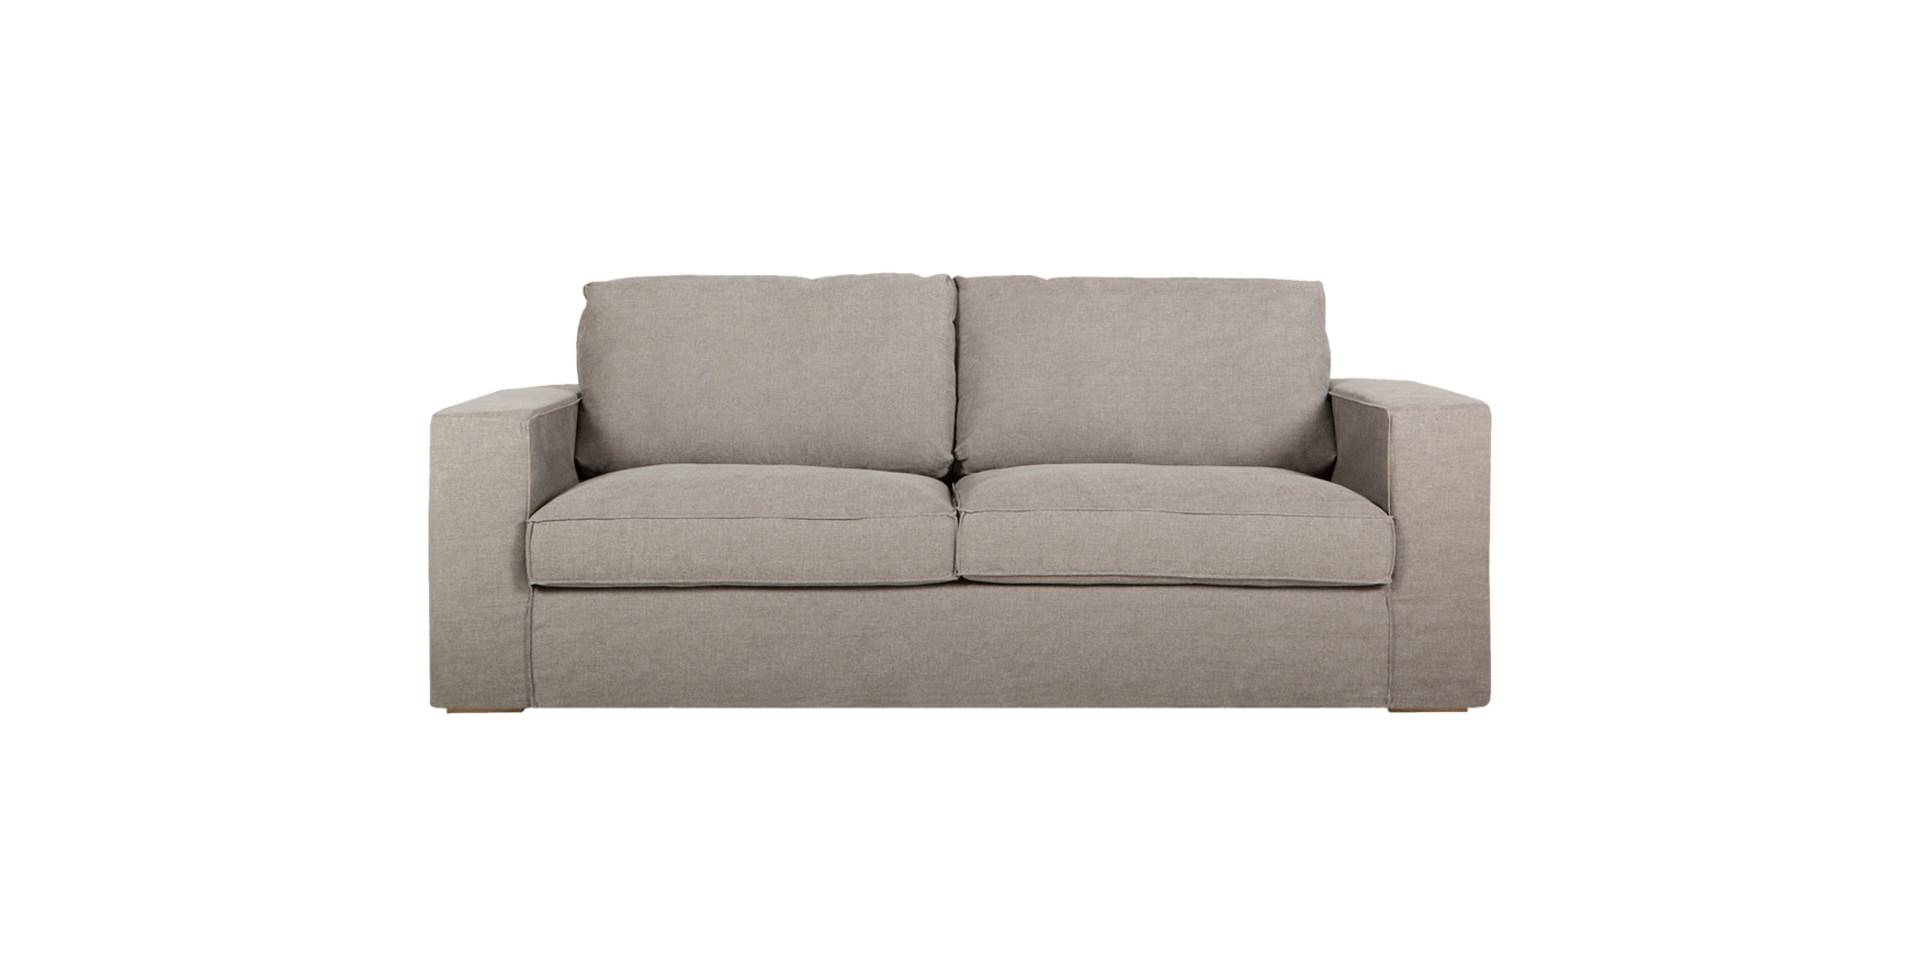 sits-abbe-canape_3seater_brest77_grey_brown_1